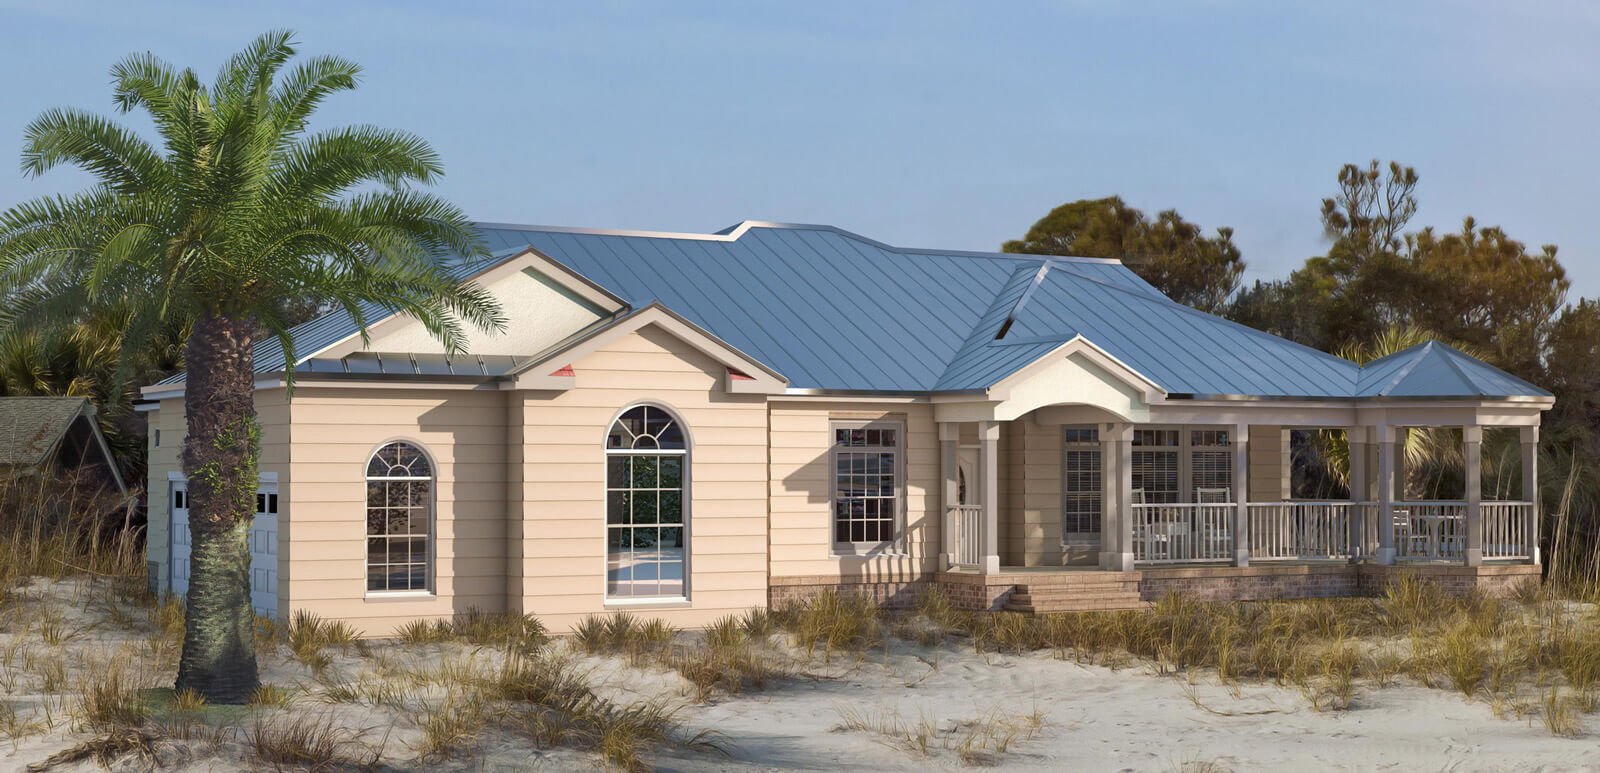 Beautiful single story house with metal roof